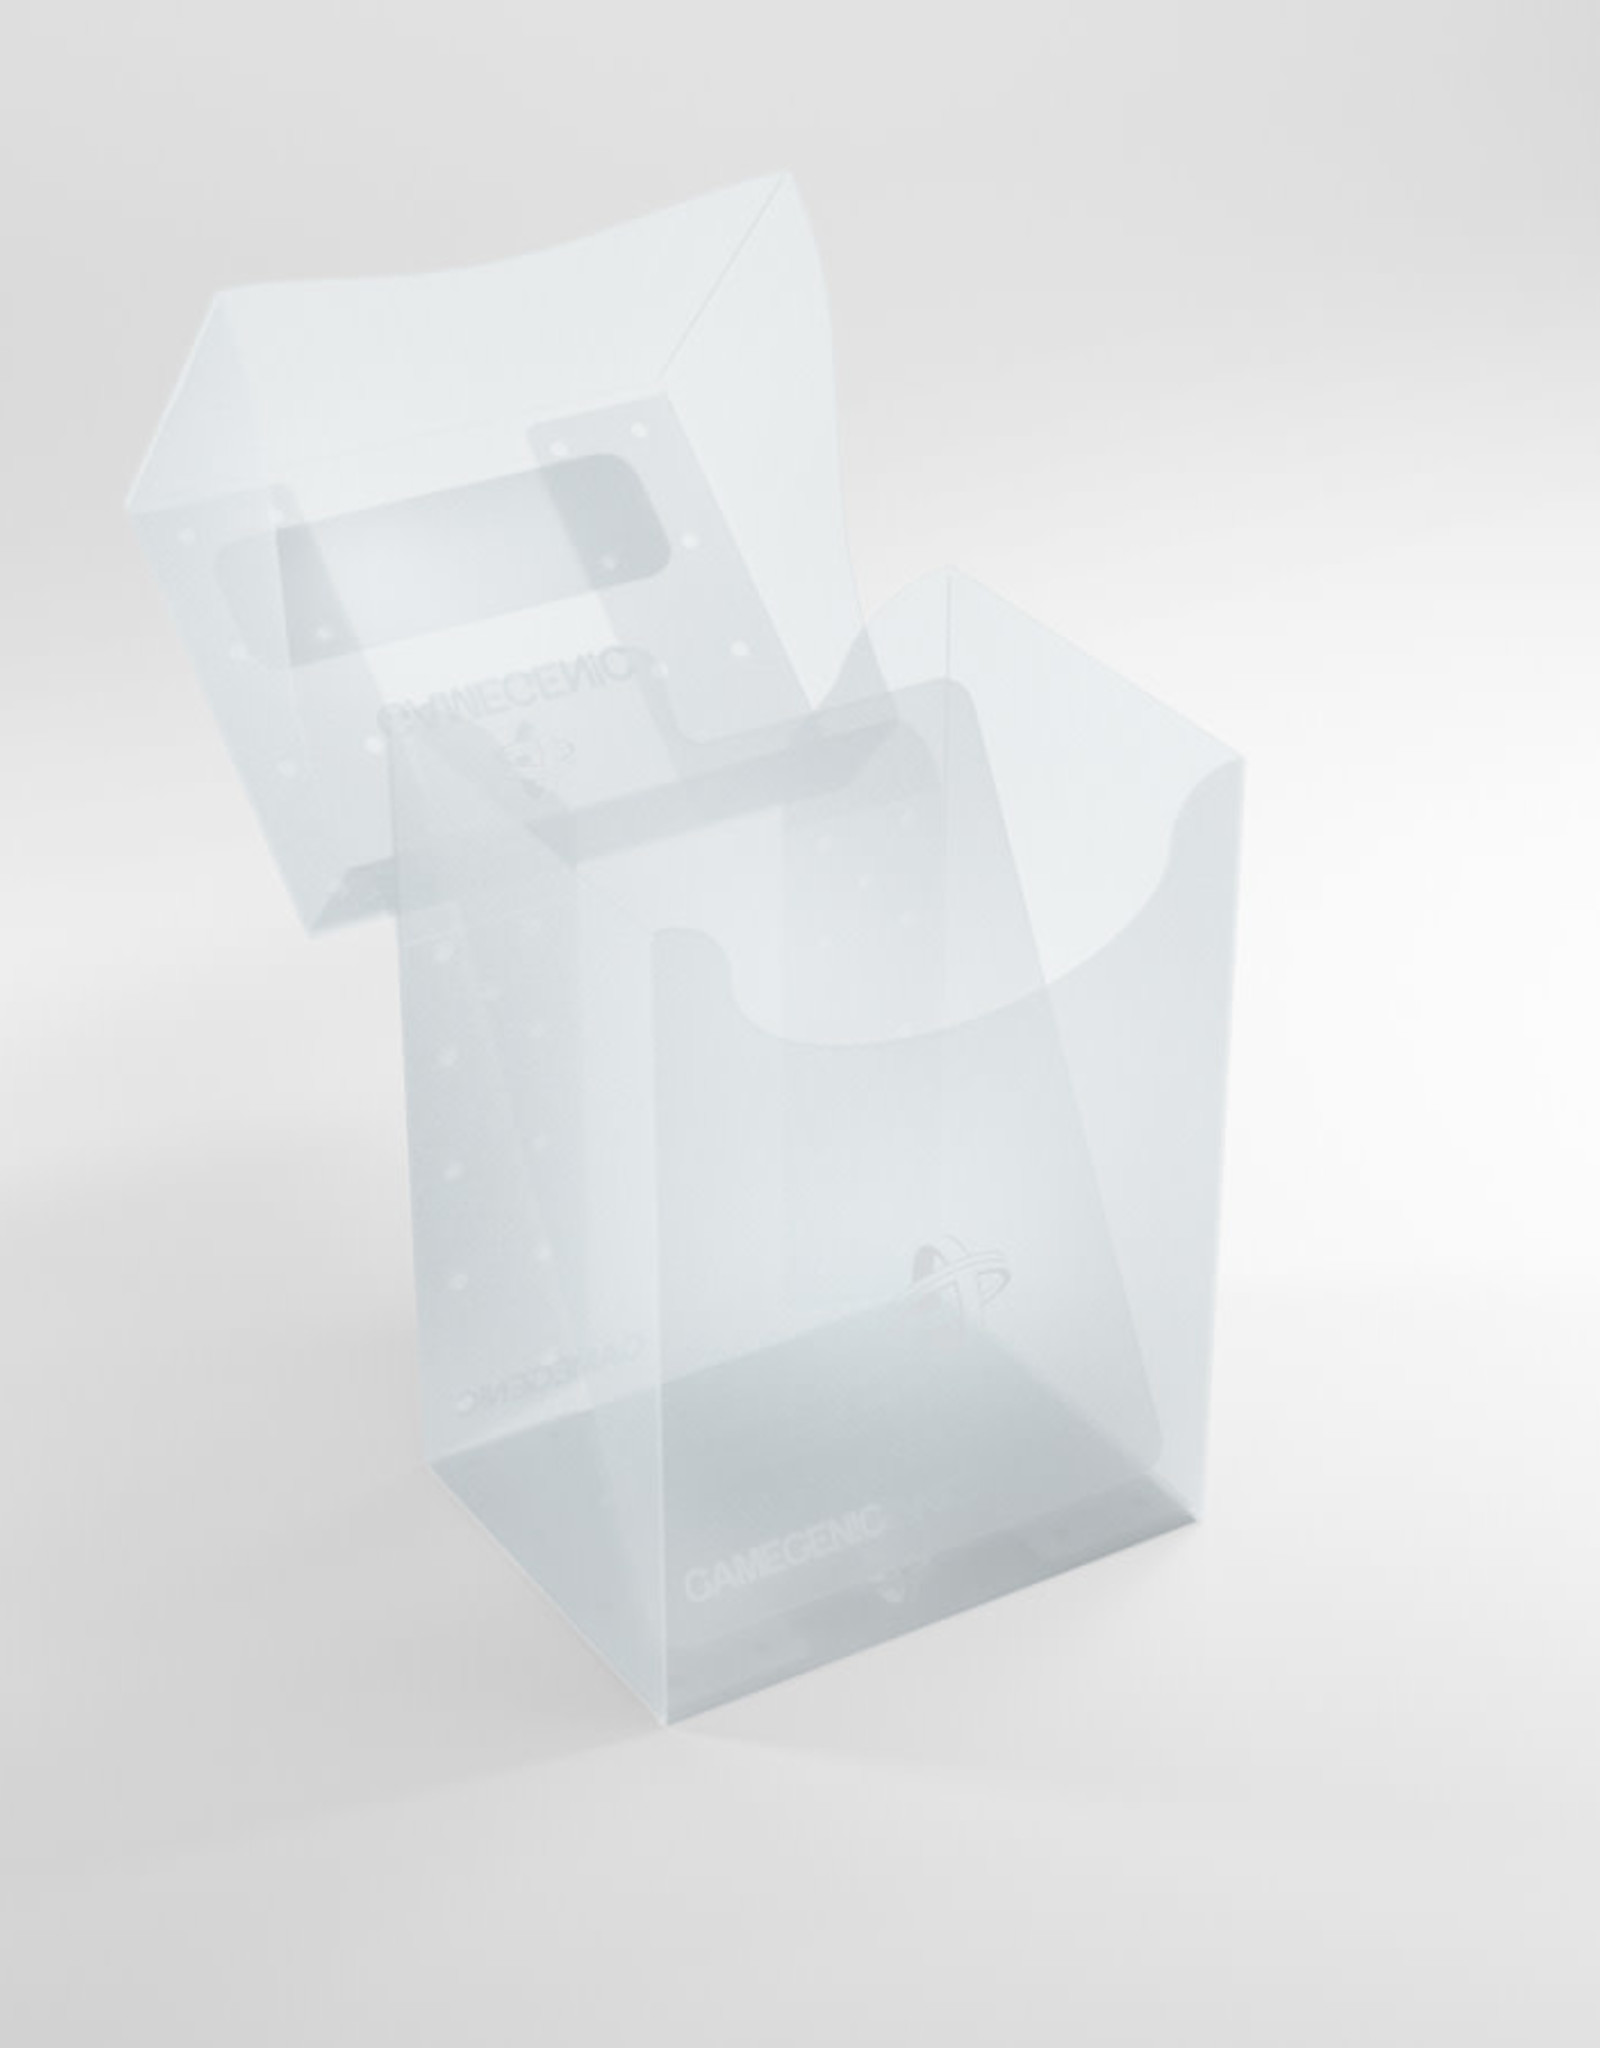 Deck Box: Deck Holder 80+ Clear